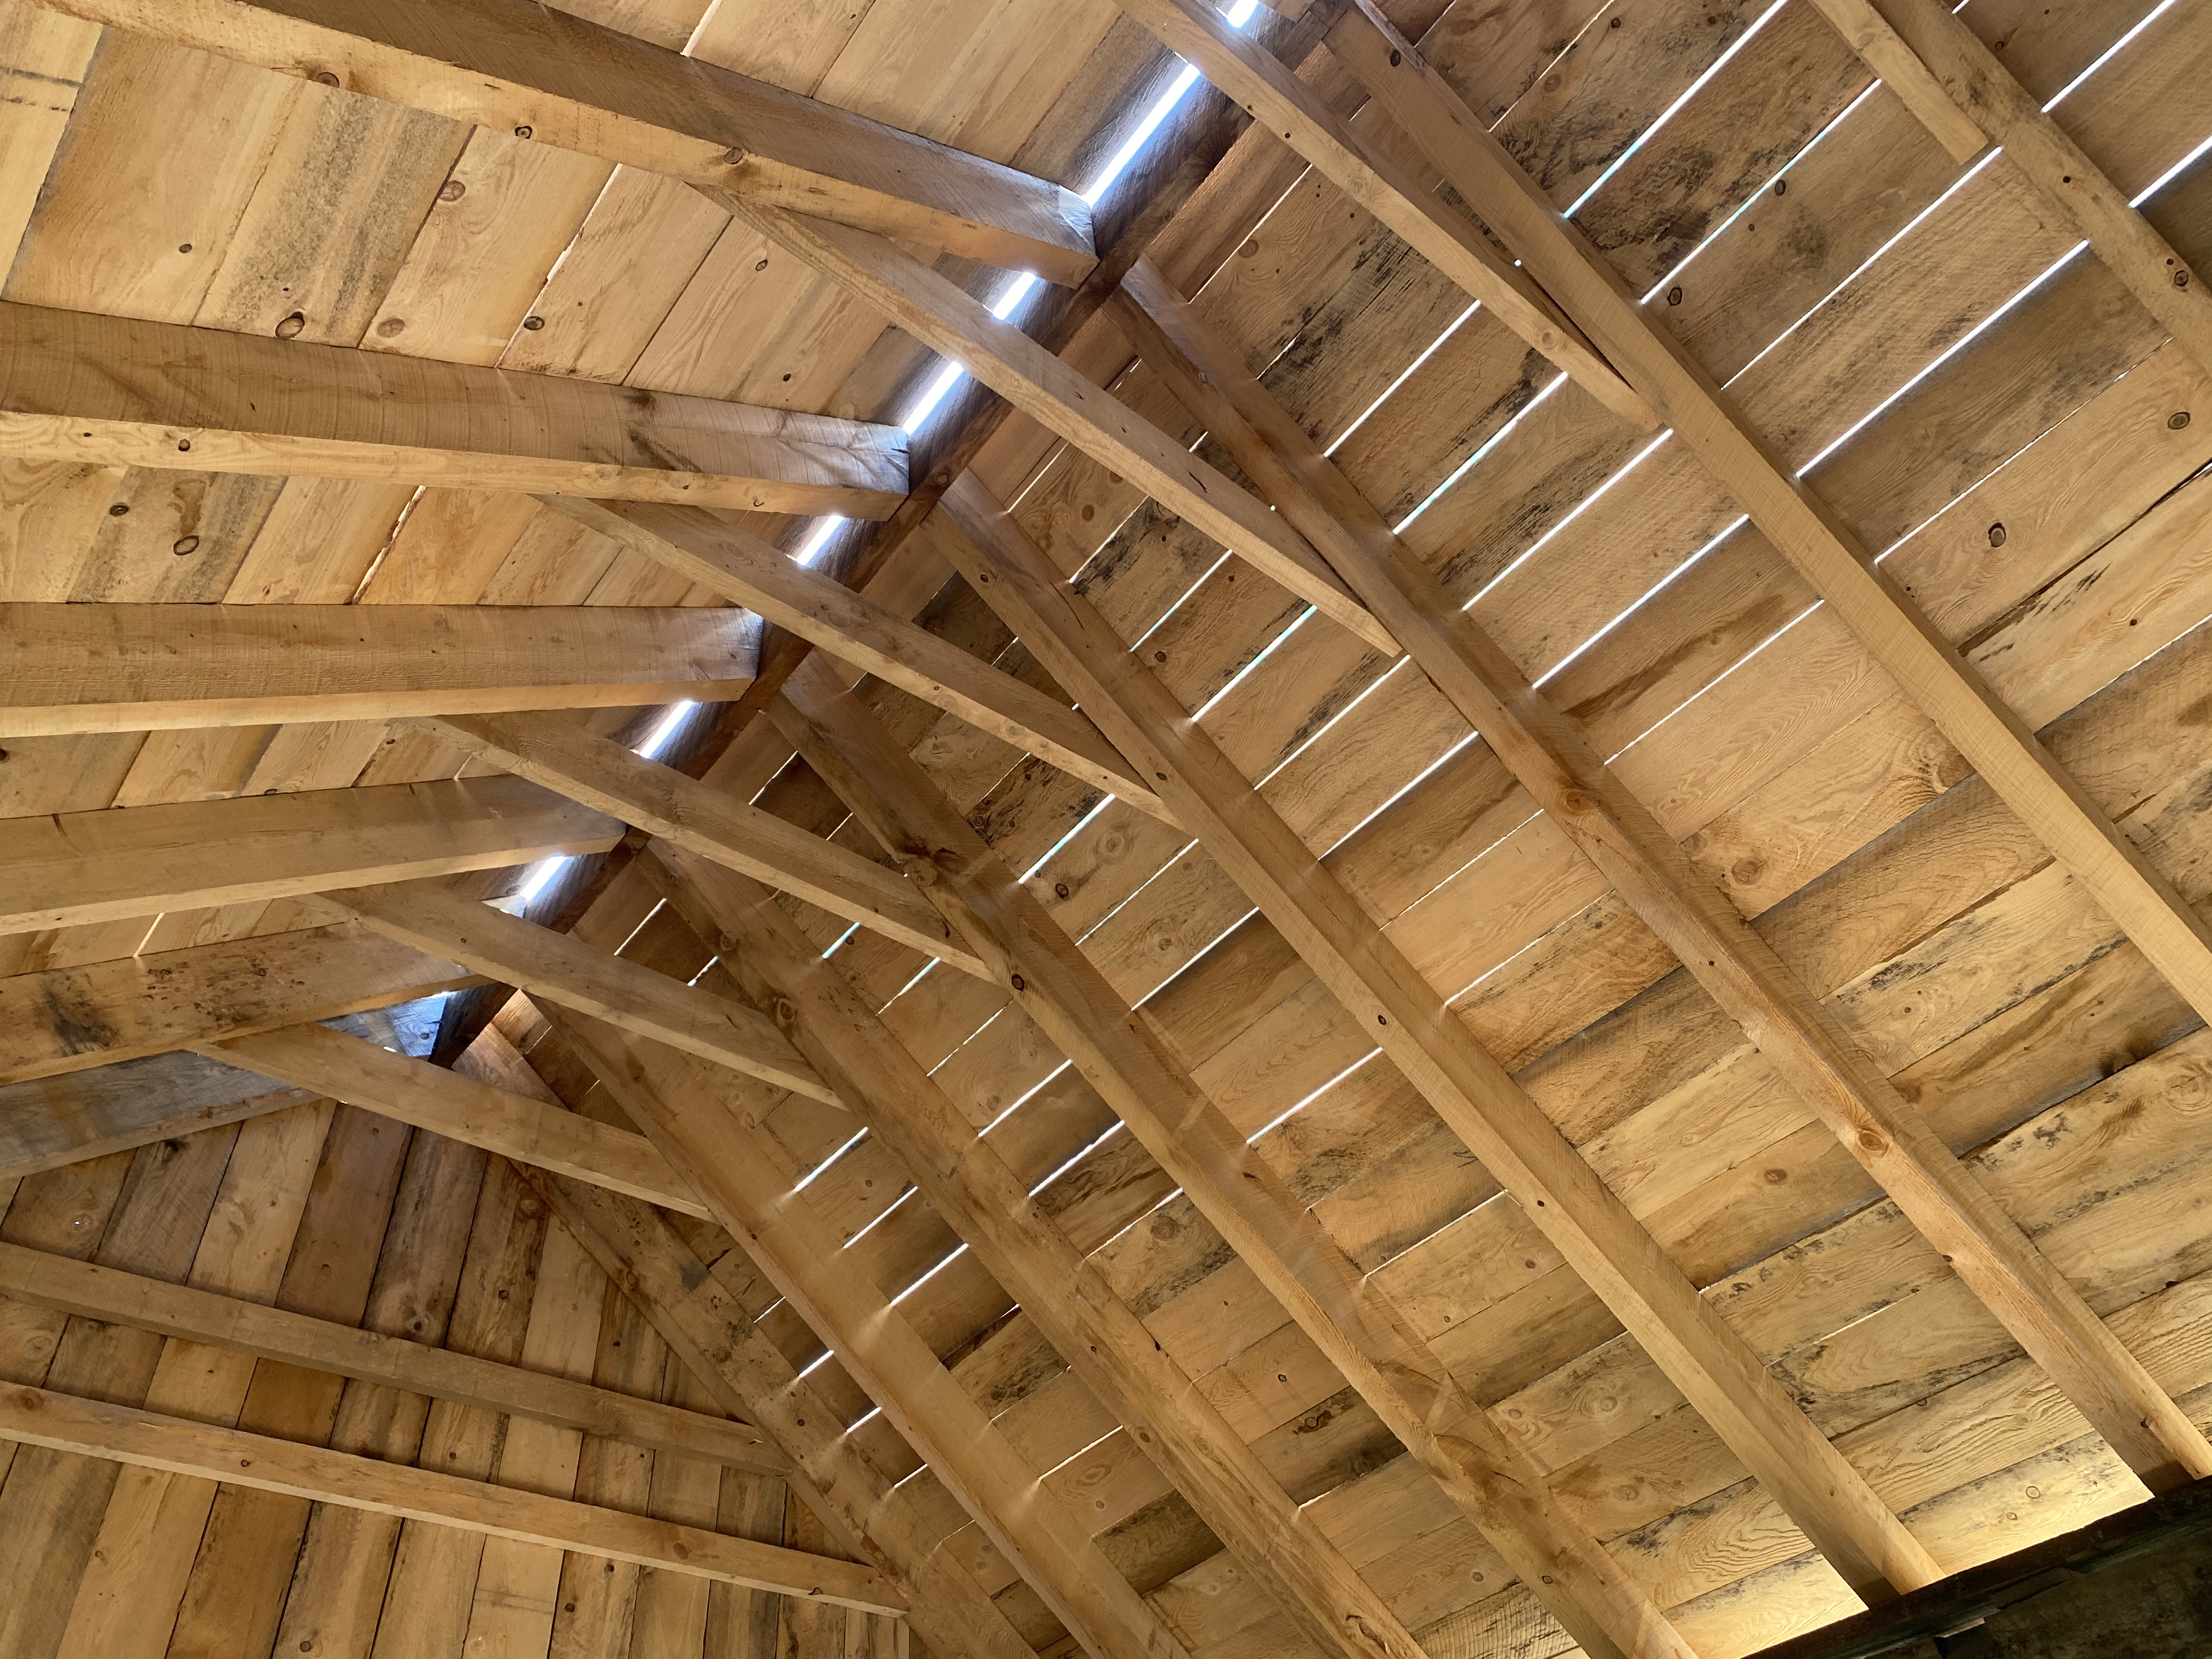 The progress of the open ceiling.